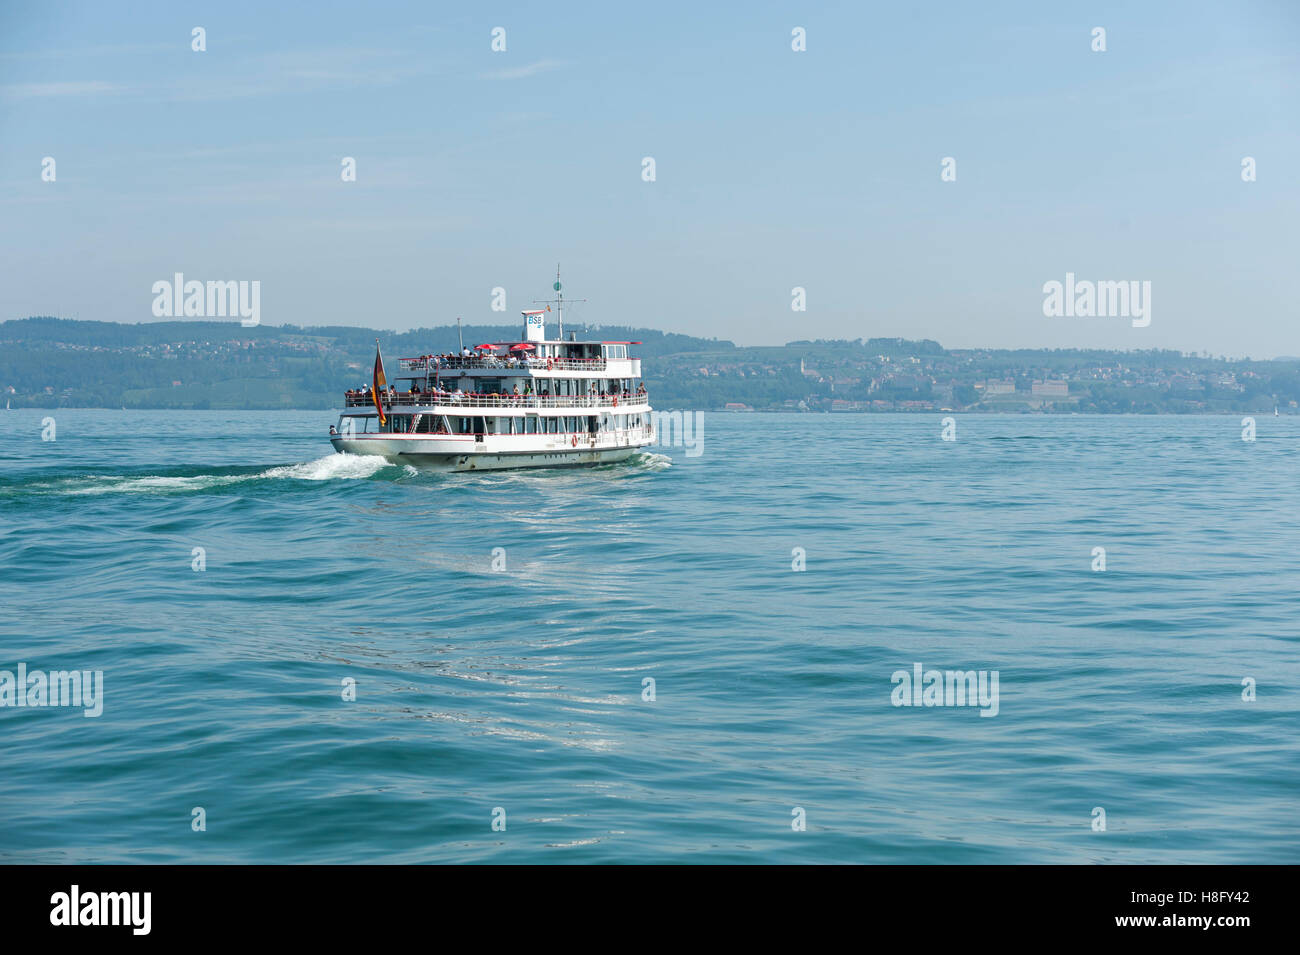 Germany, Constance, passenger ship of the 'Weiße Flotte' on the lake - Stock Image